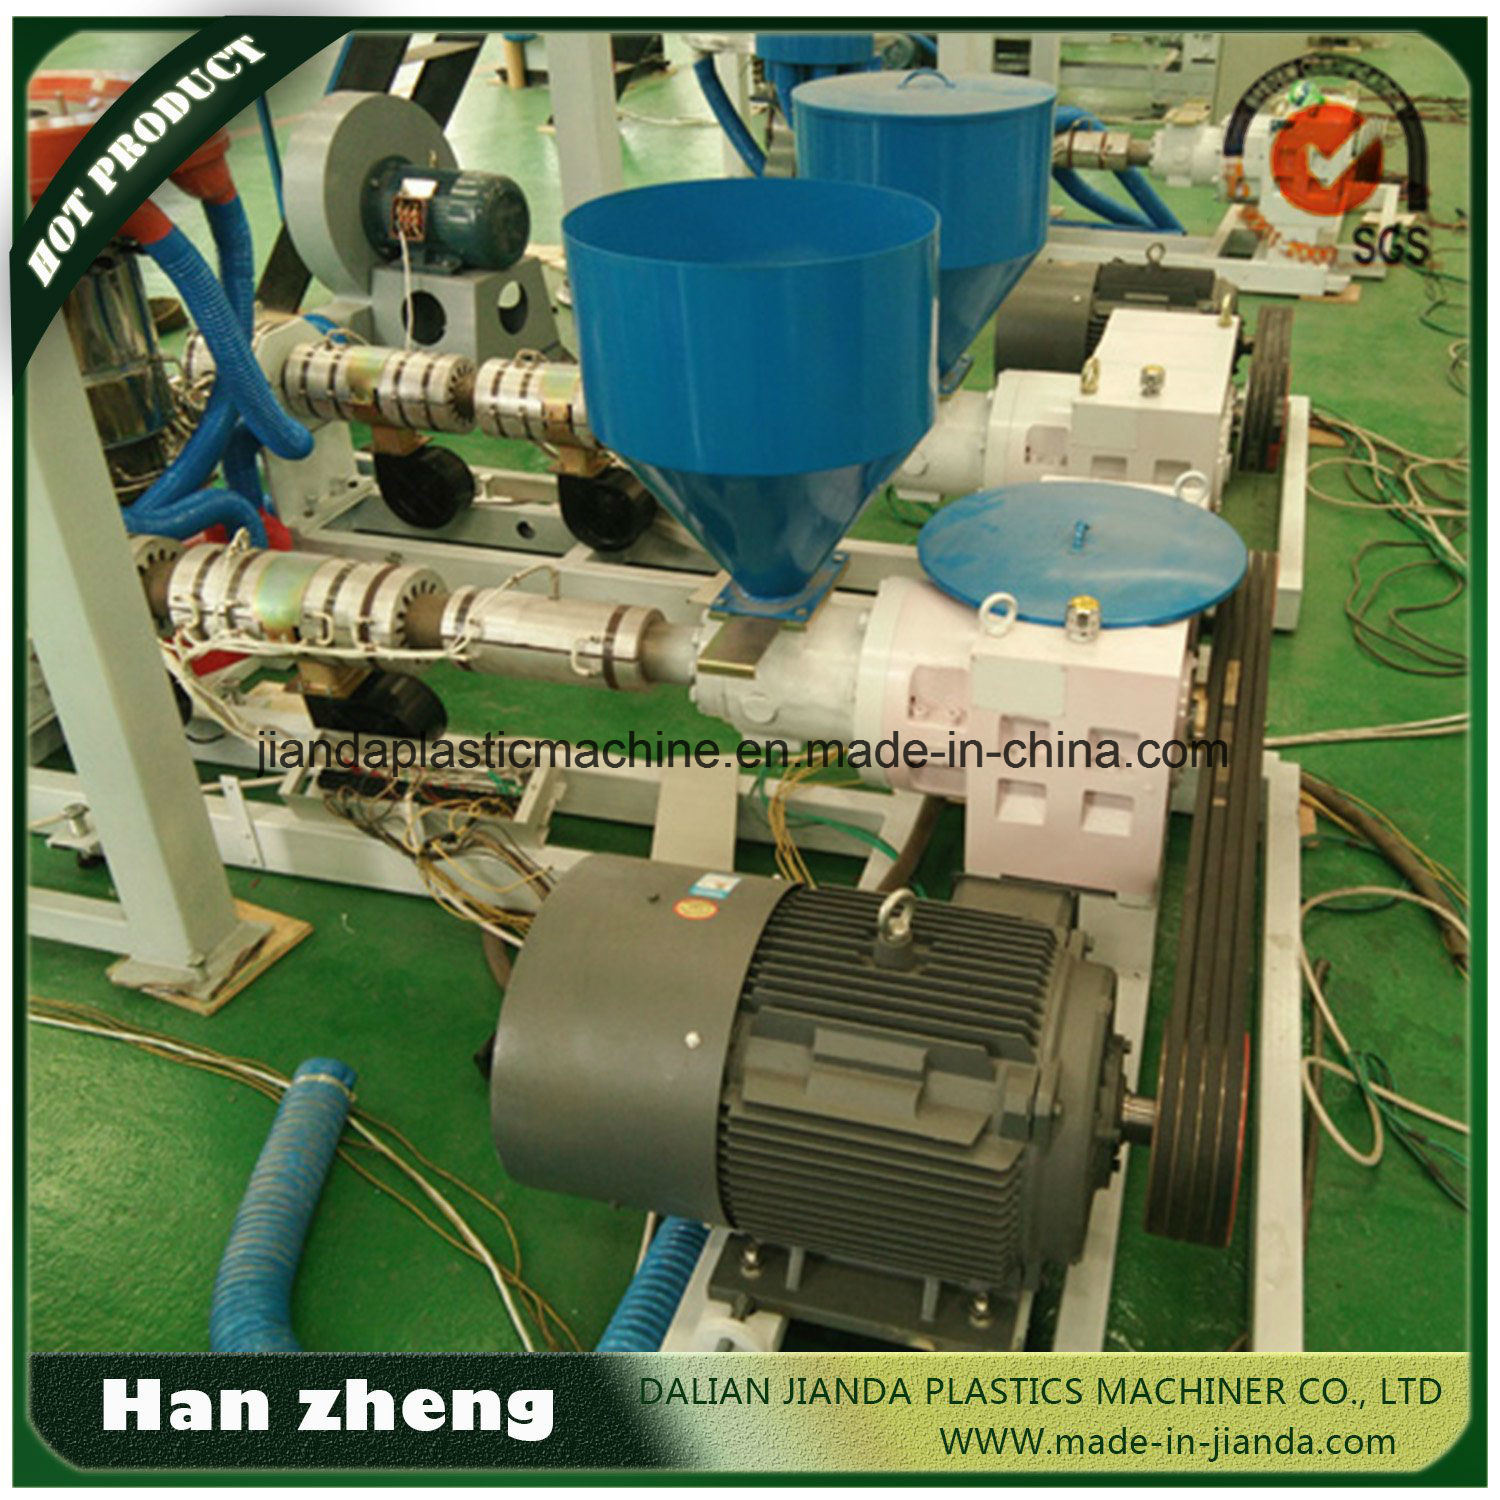 PE Three Layer Co-Extrusion Film Blowing Machine for Agriculture 45-3-1300